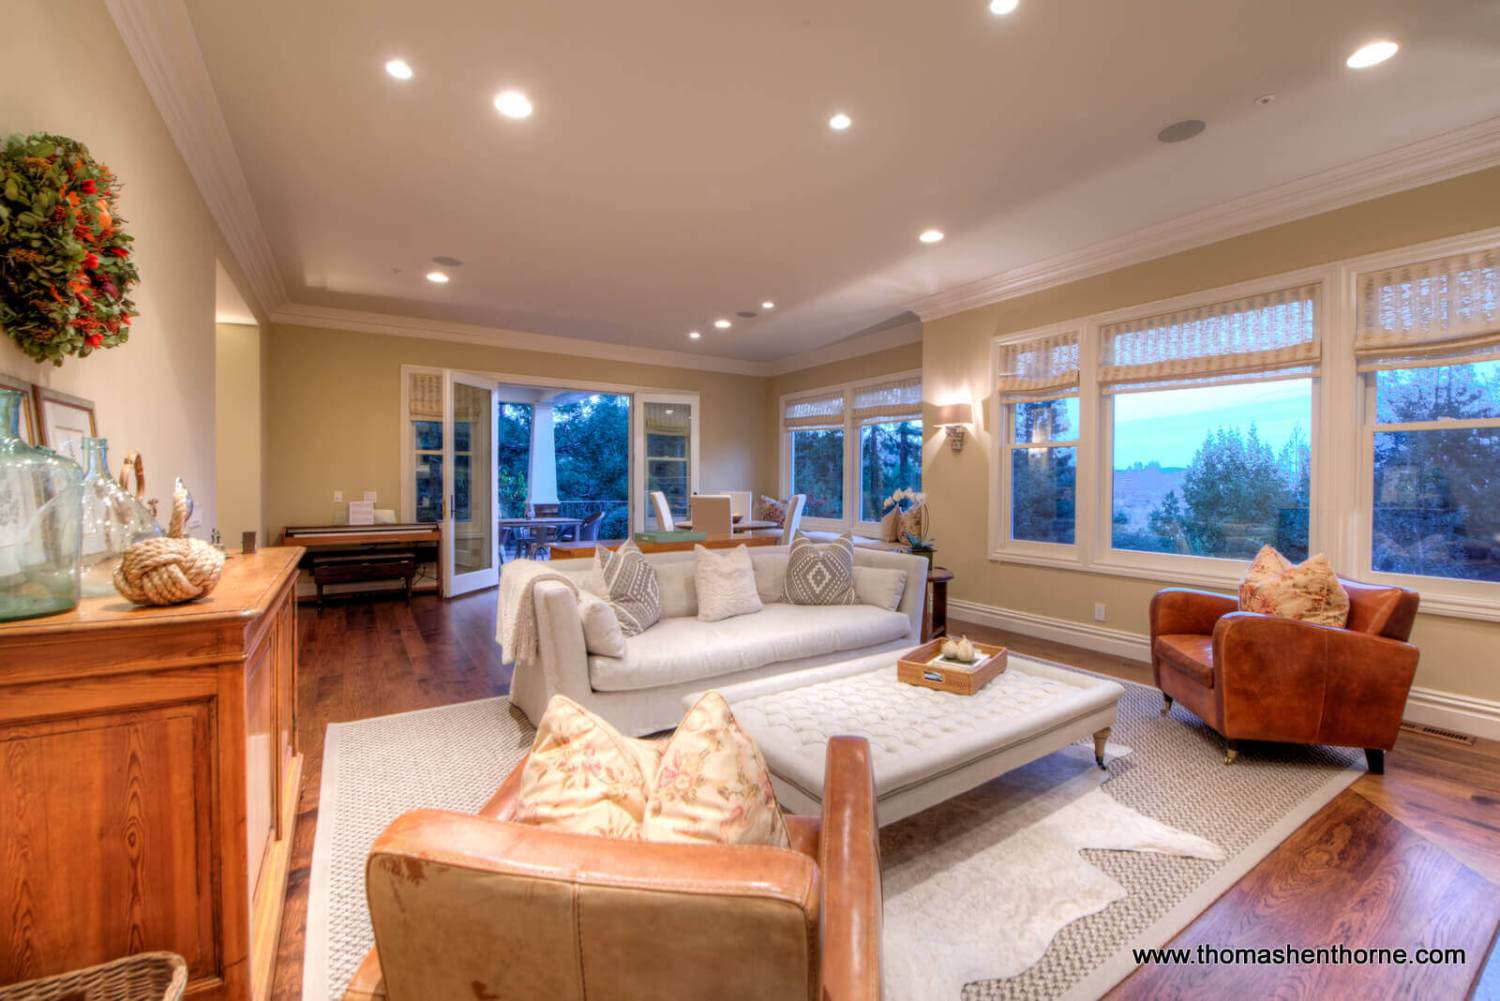 Living room with windows at twilight